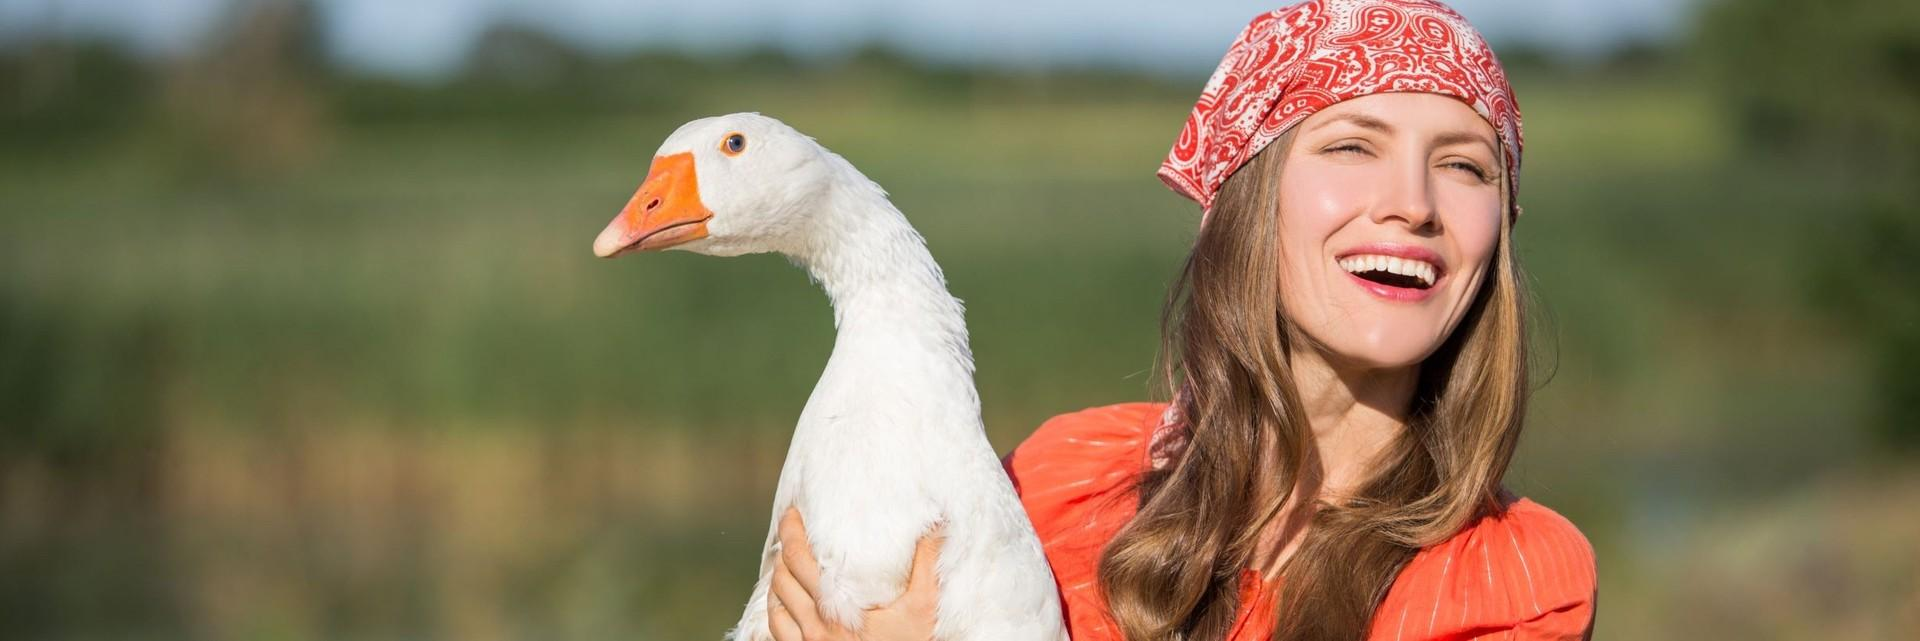 Happy woman holding a goose